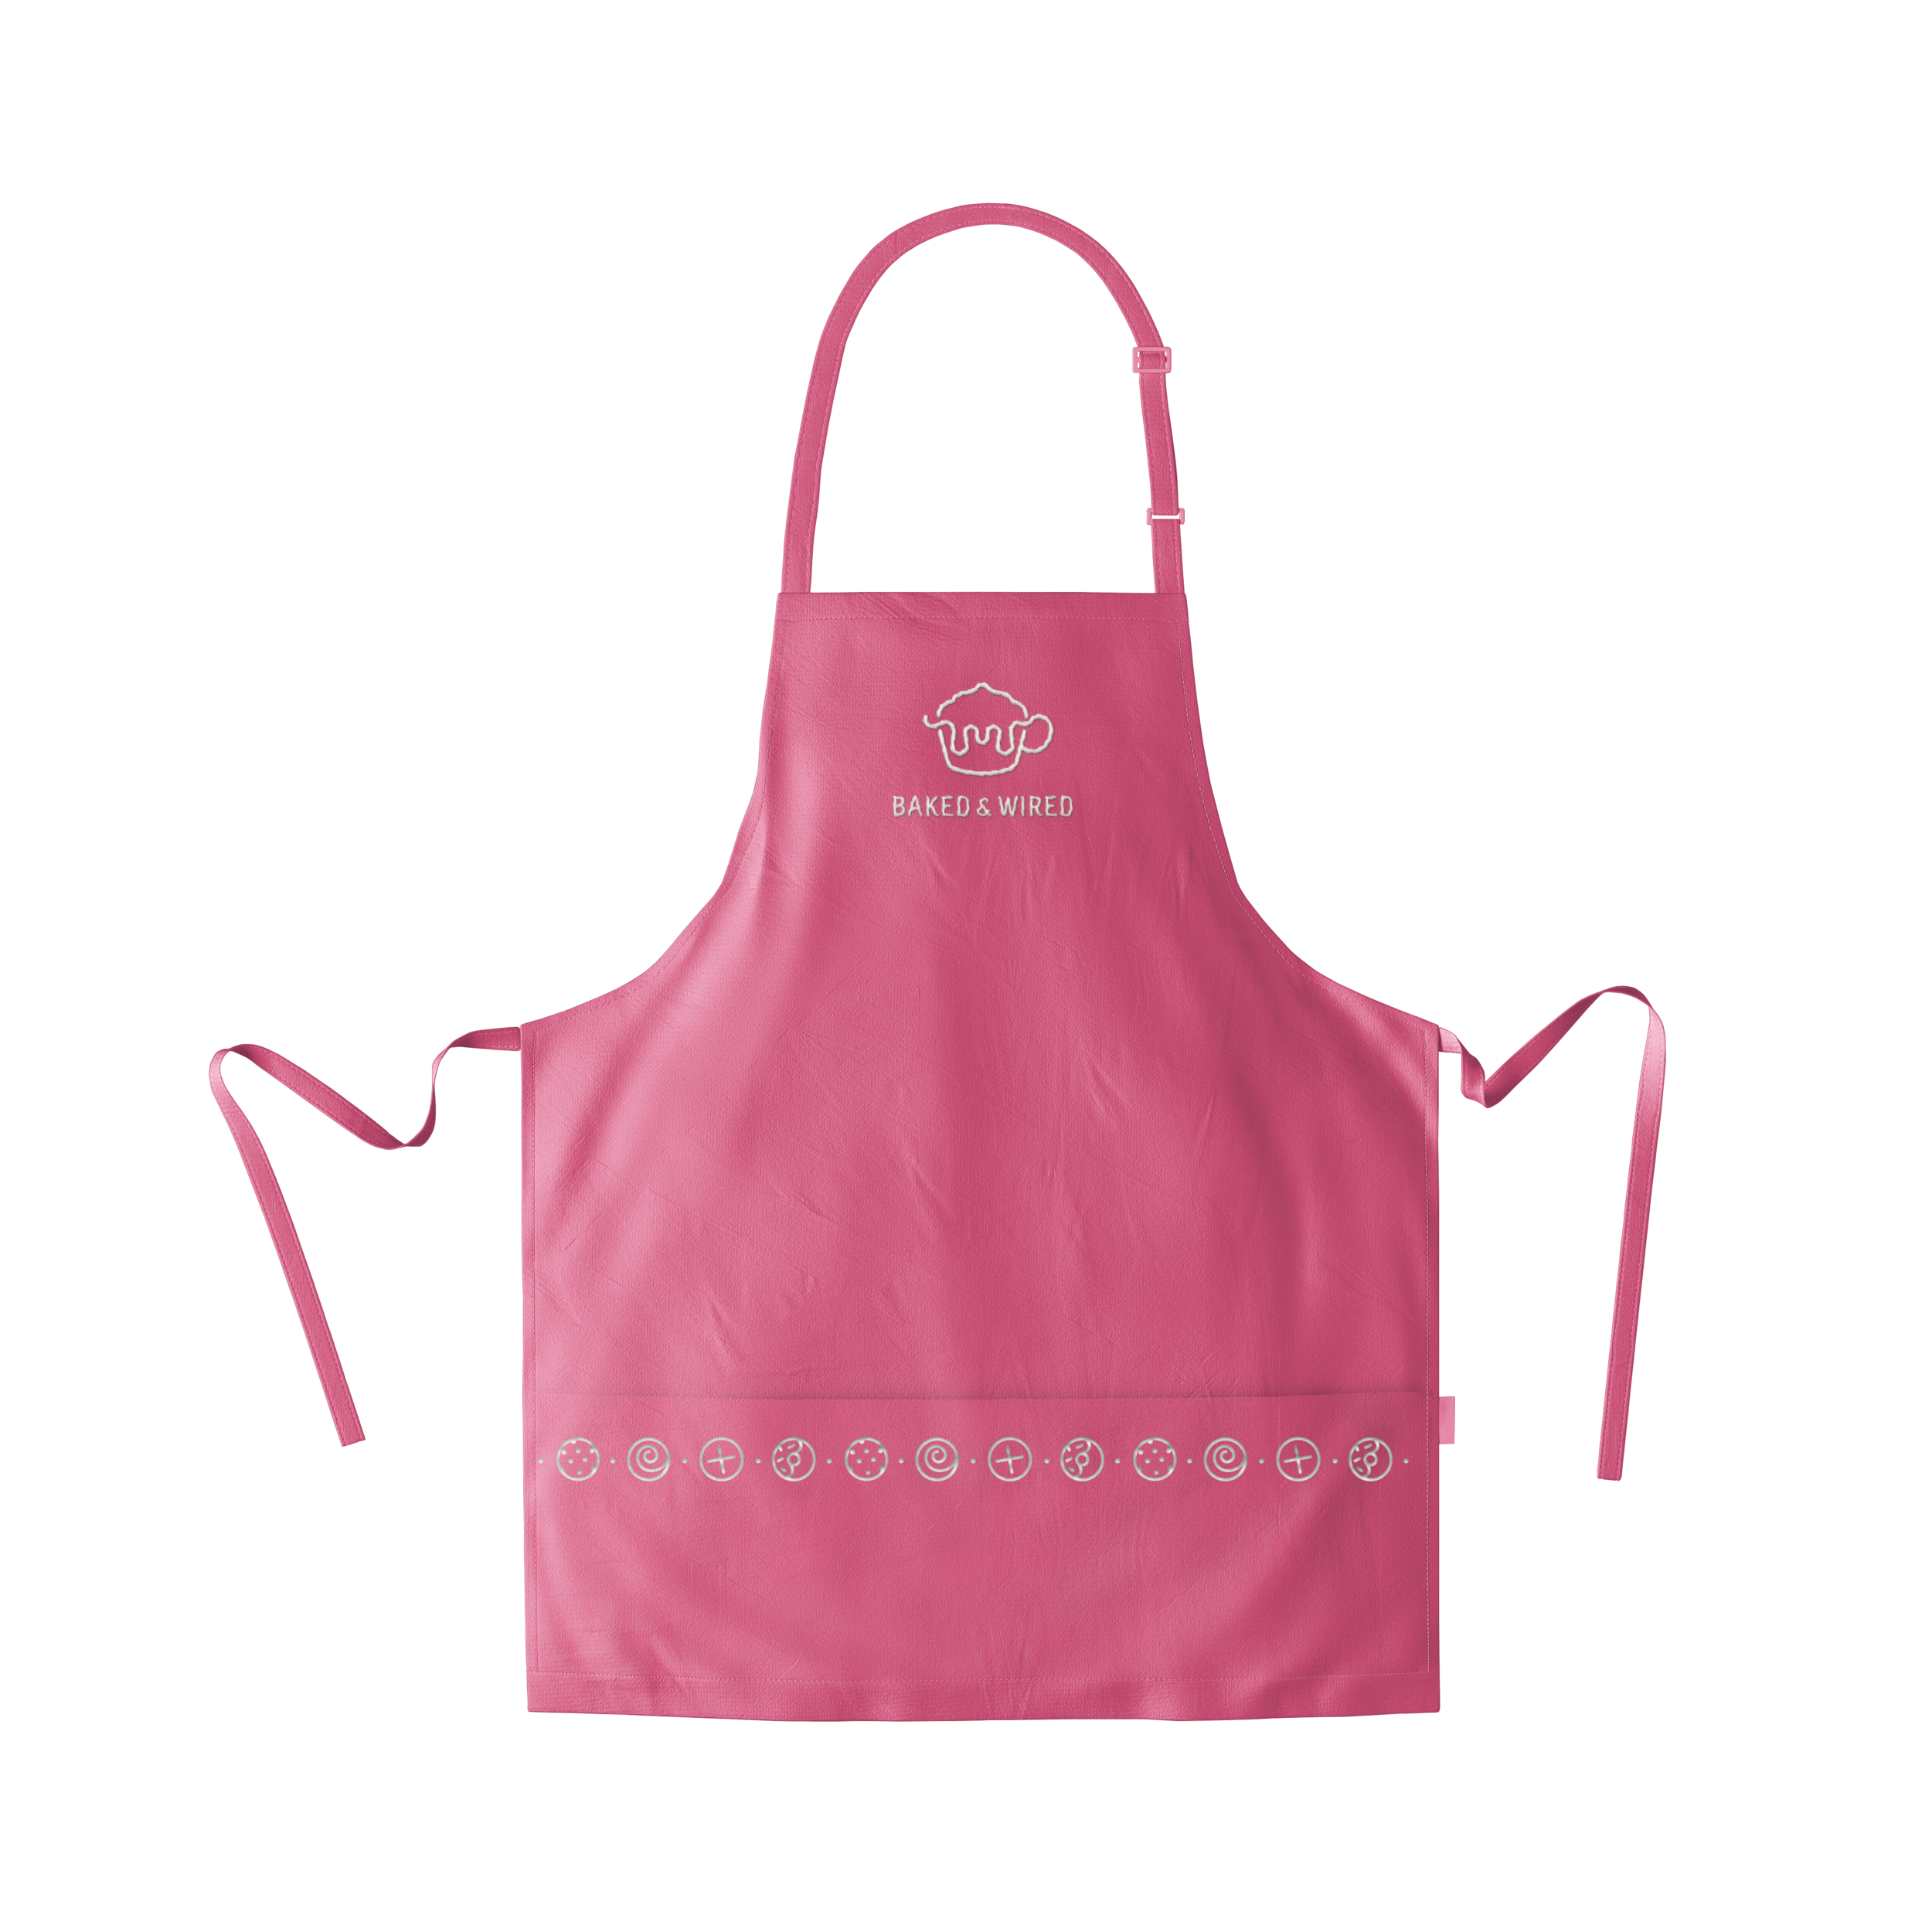 Baked&Wired_apron.png